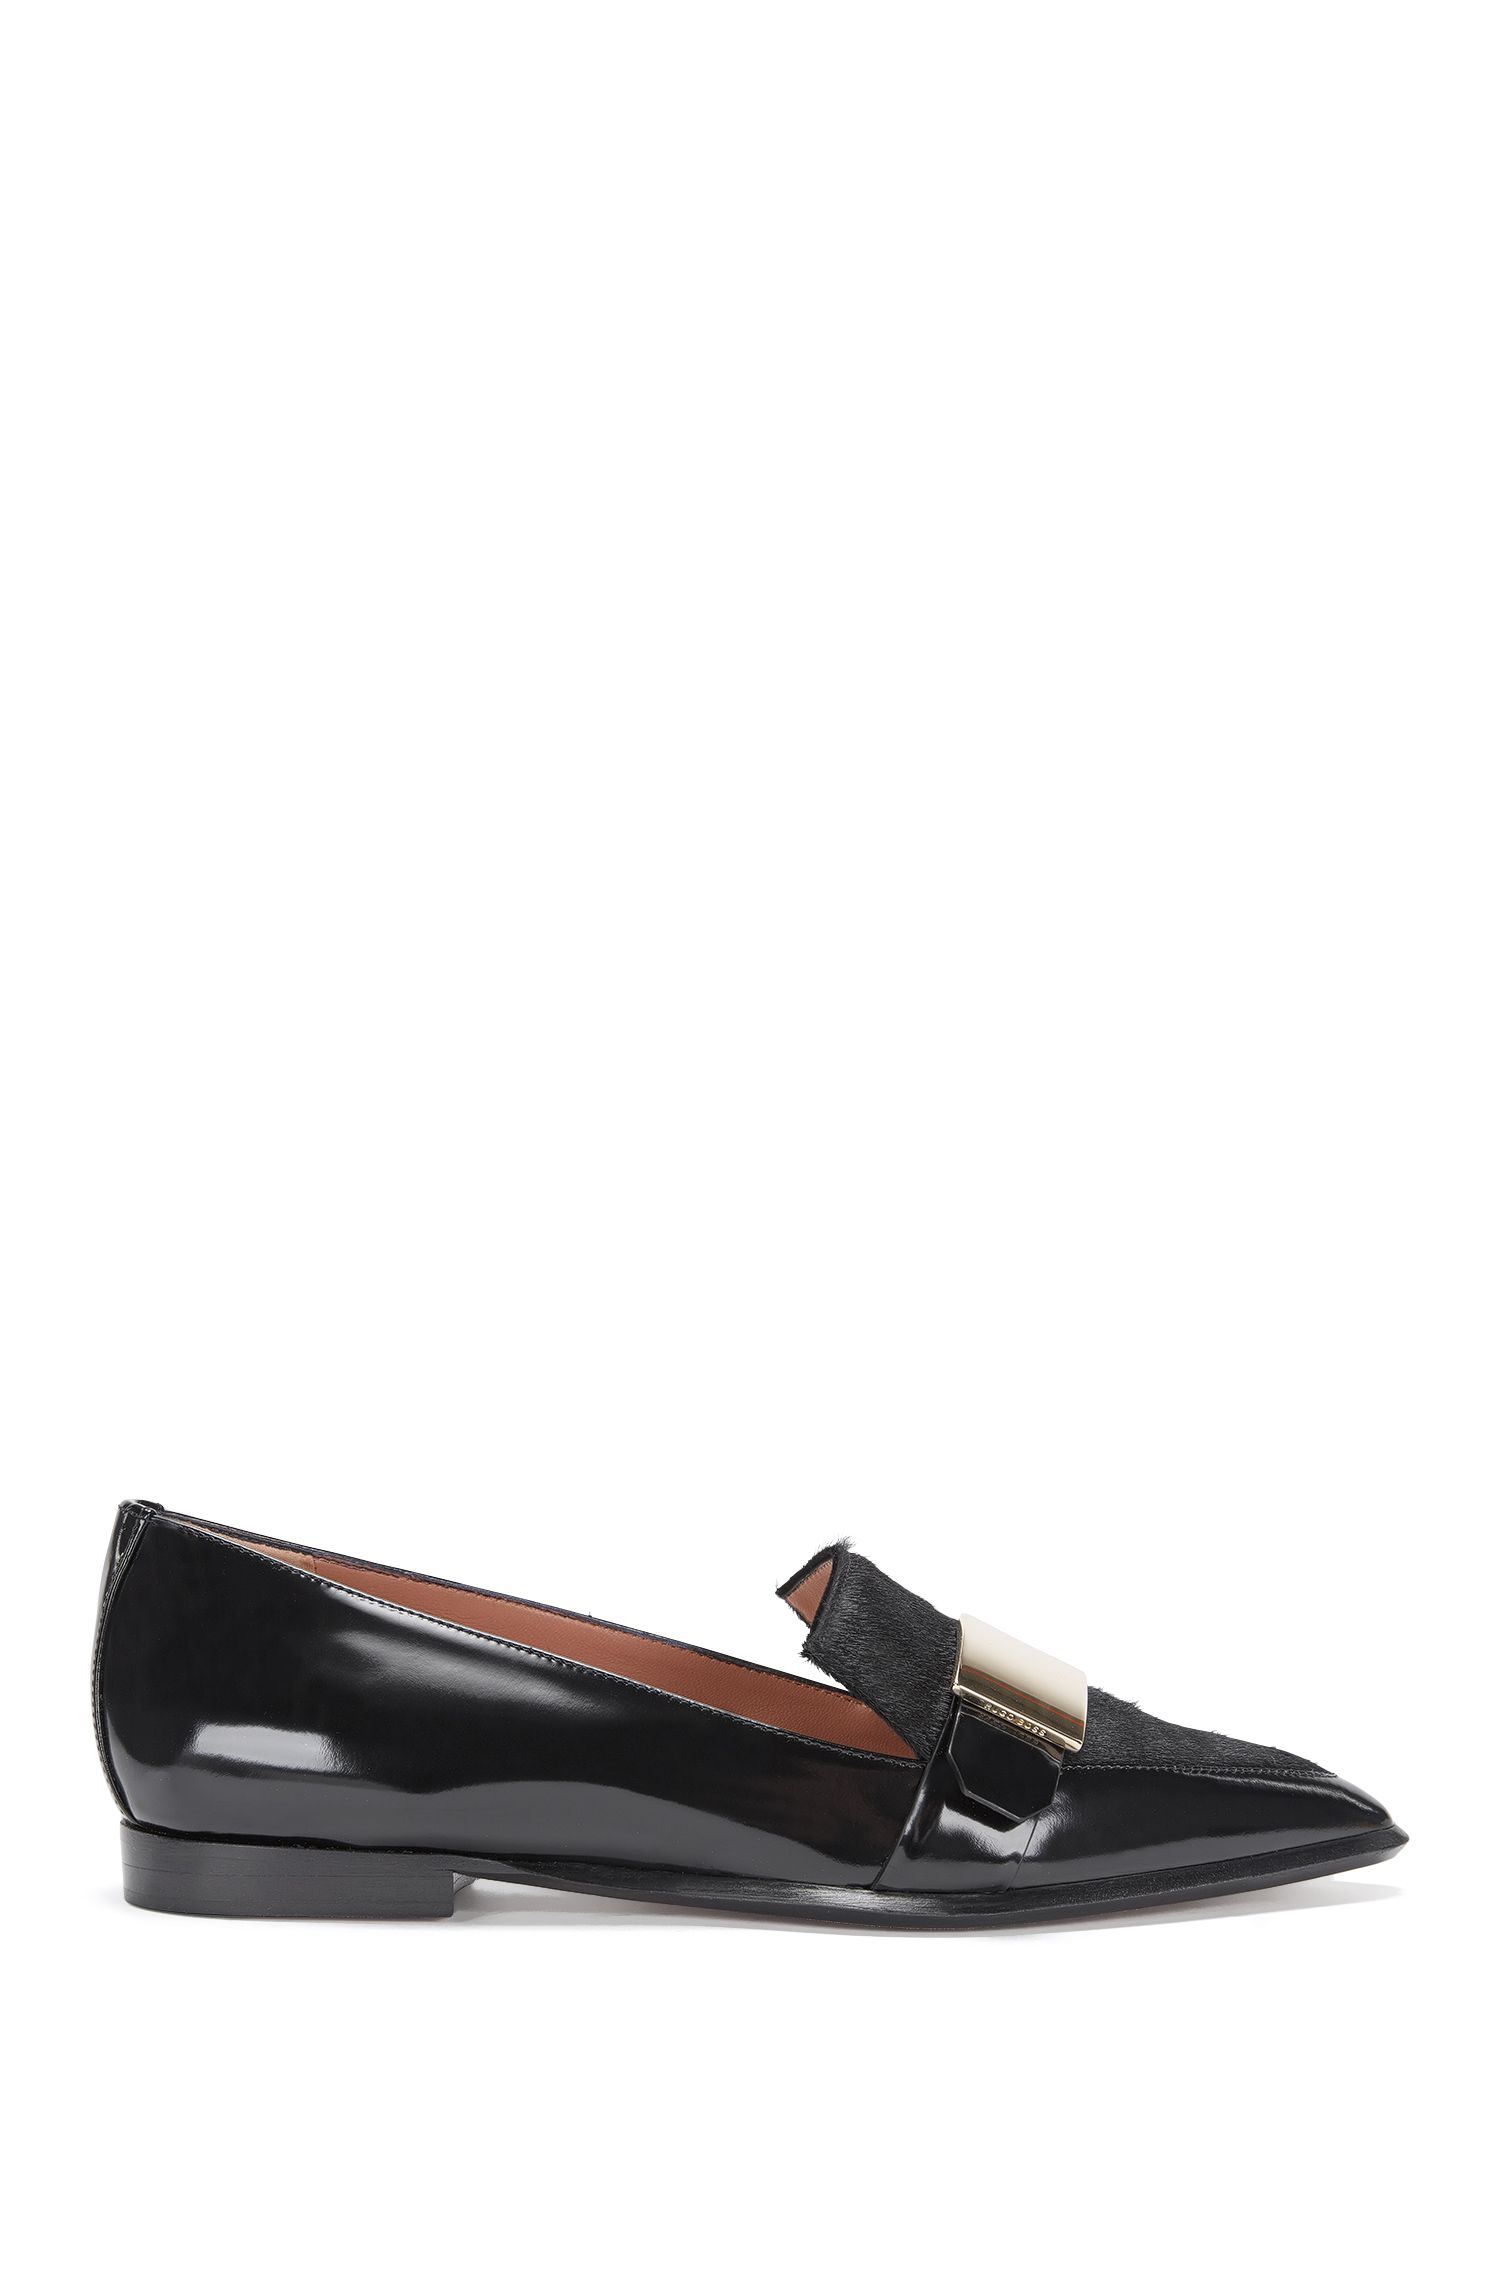 'Pointy Loafer LB' | Italian Calfskin Pointed Loafer